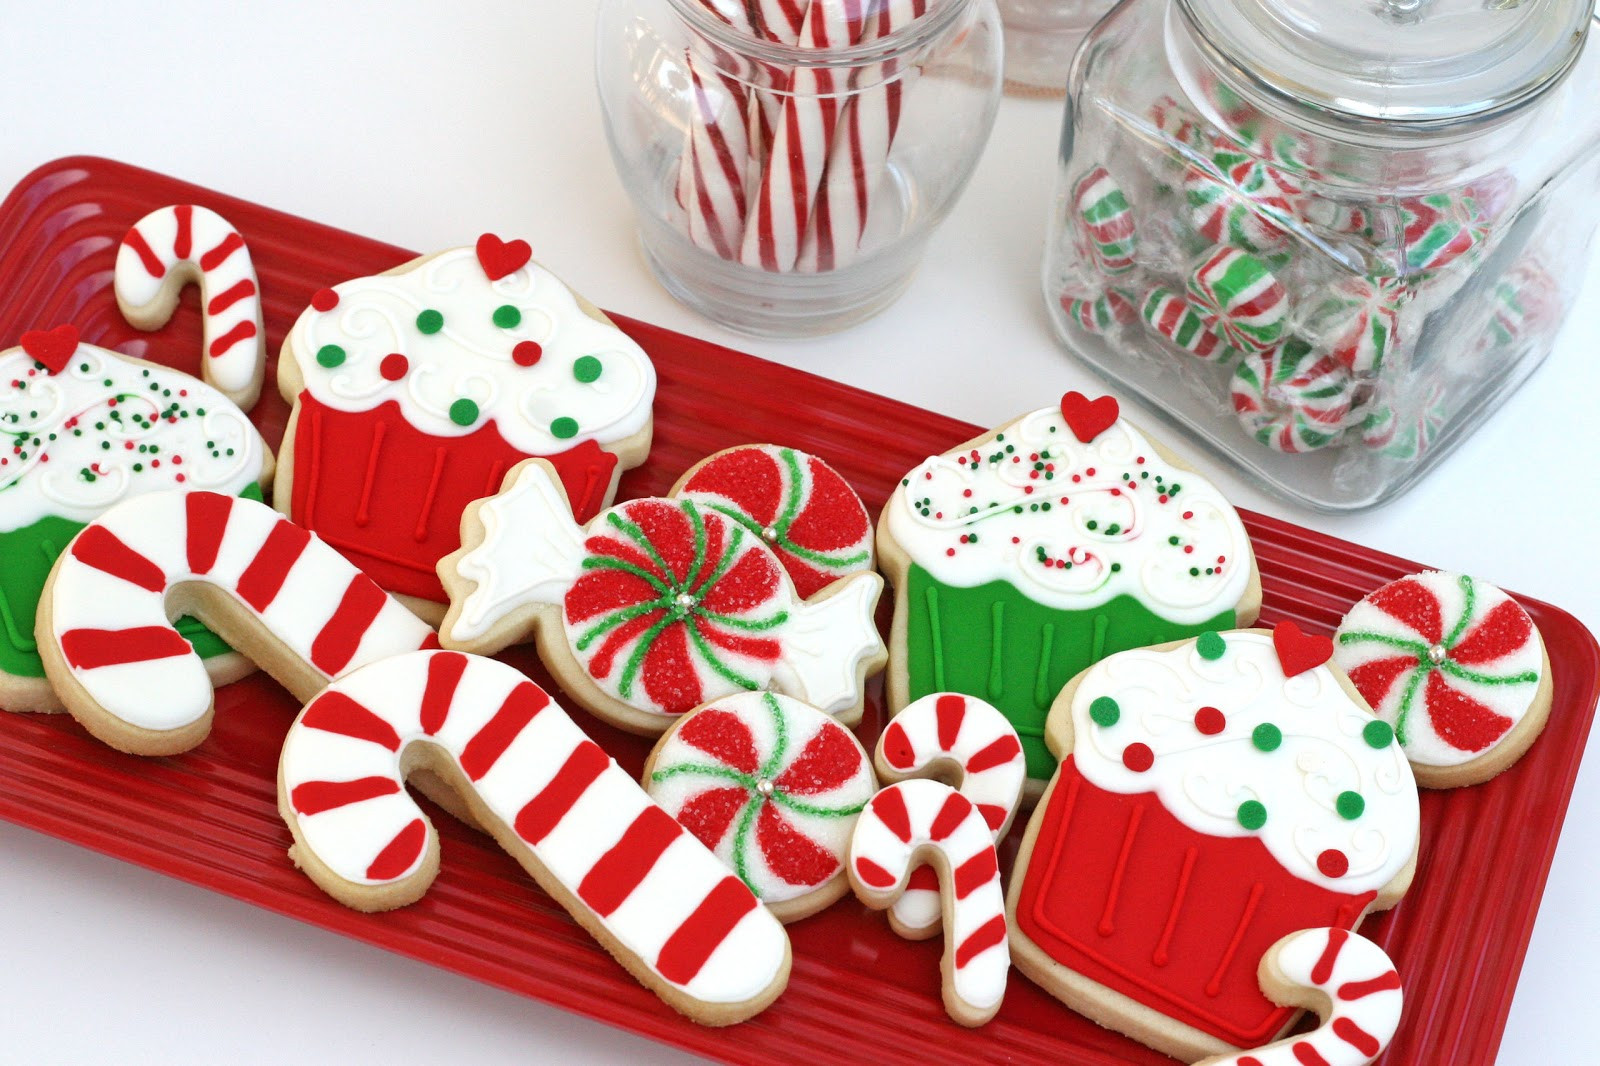 Christmas Cookies And Candy  Christmas Cookies Galore Glorious Treats